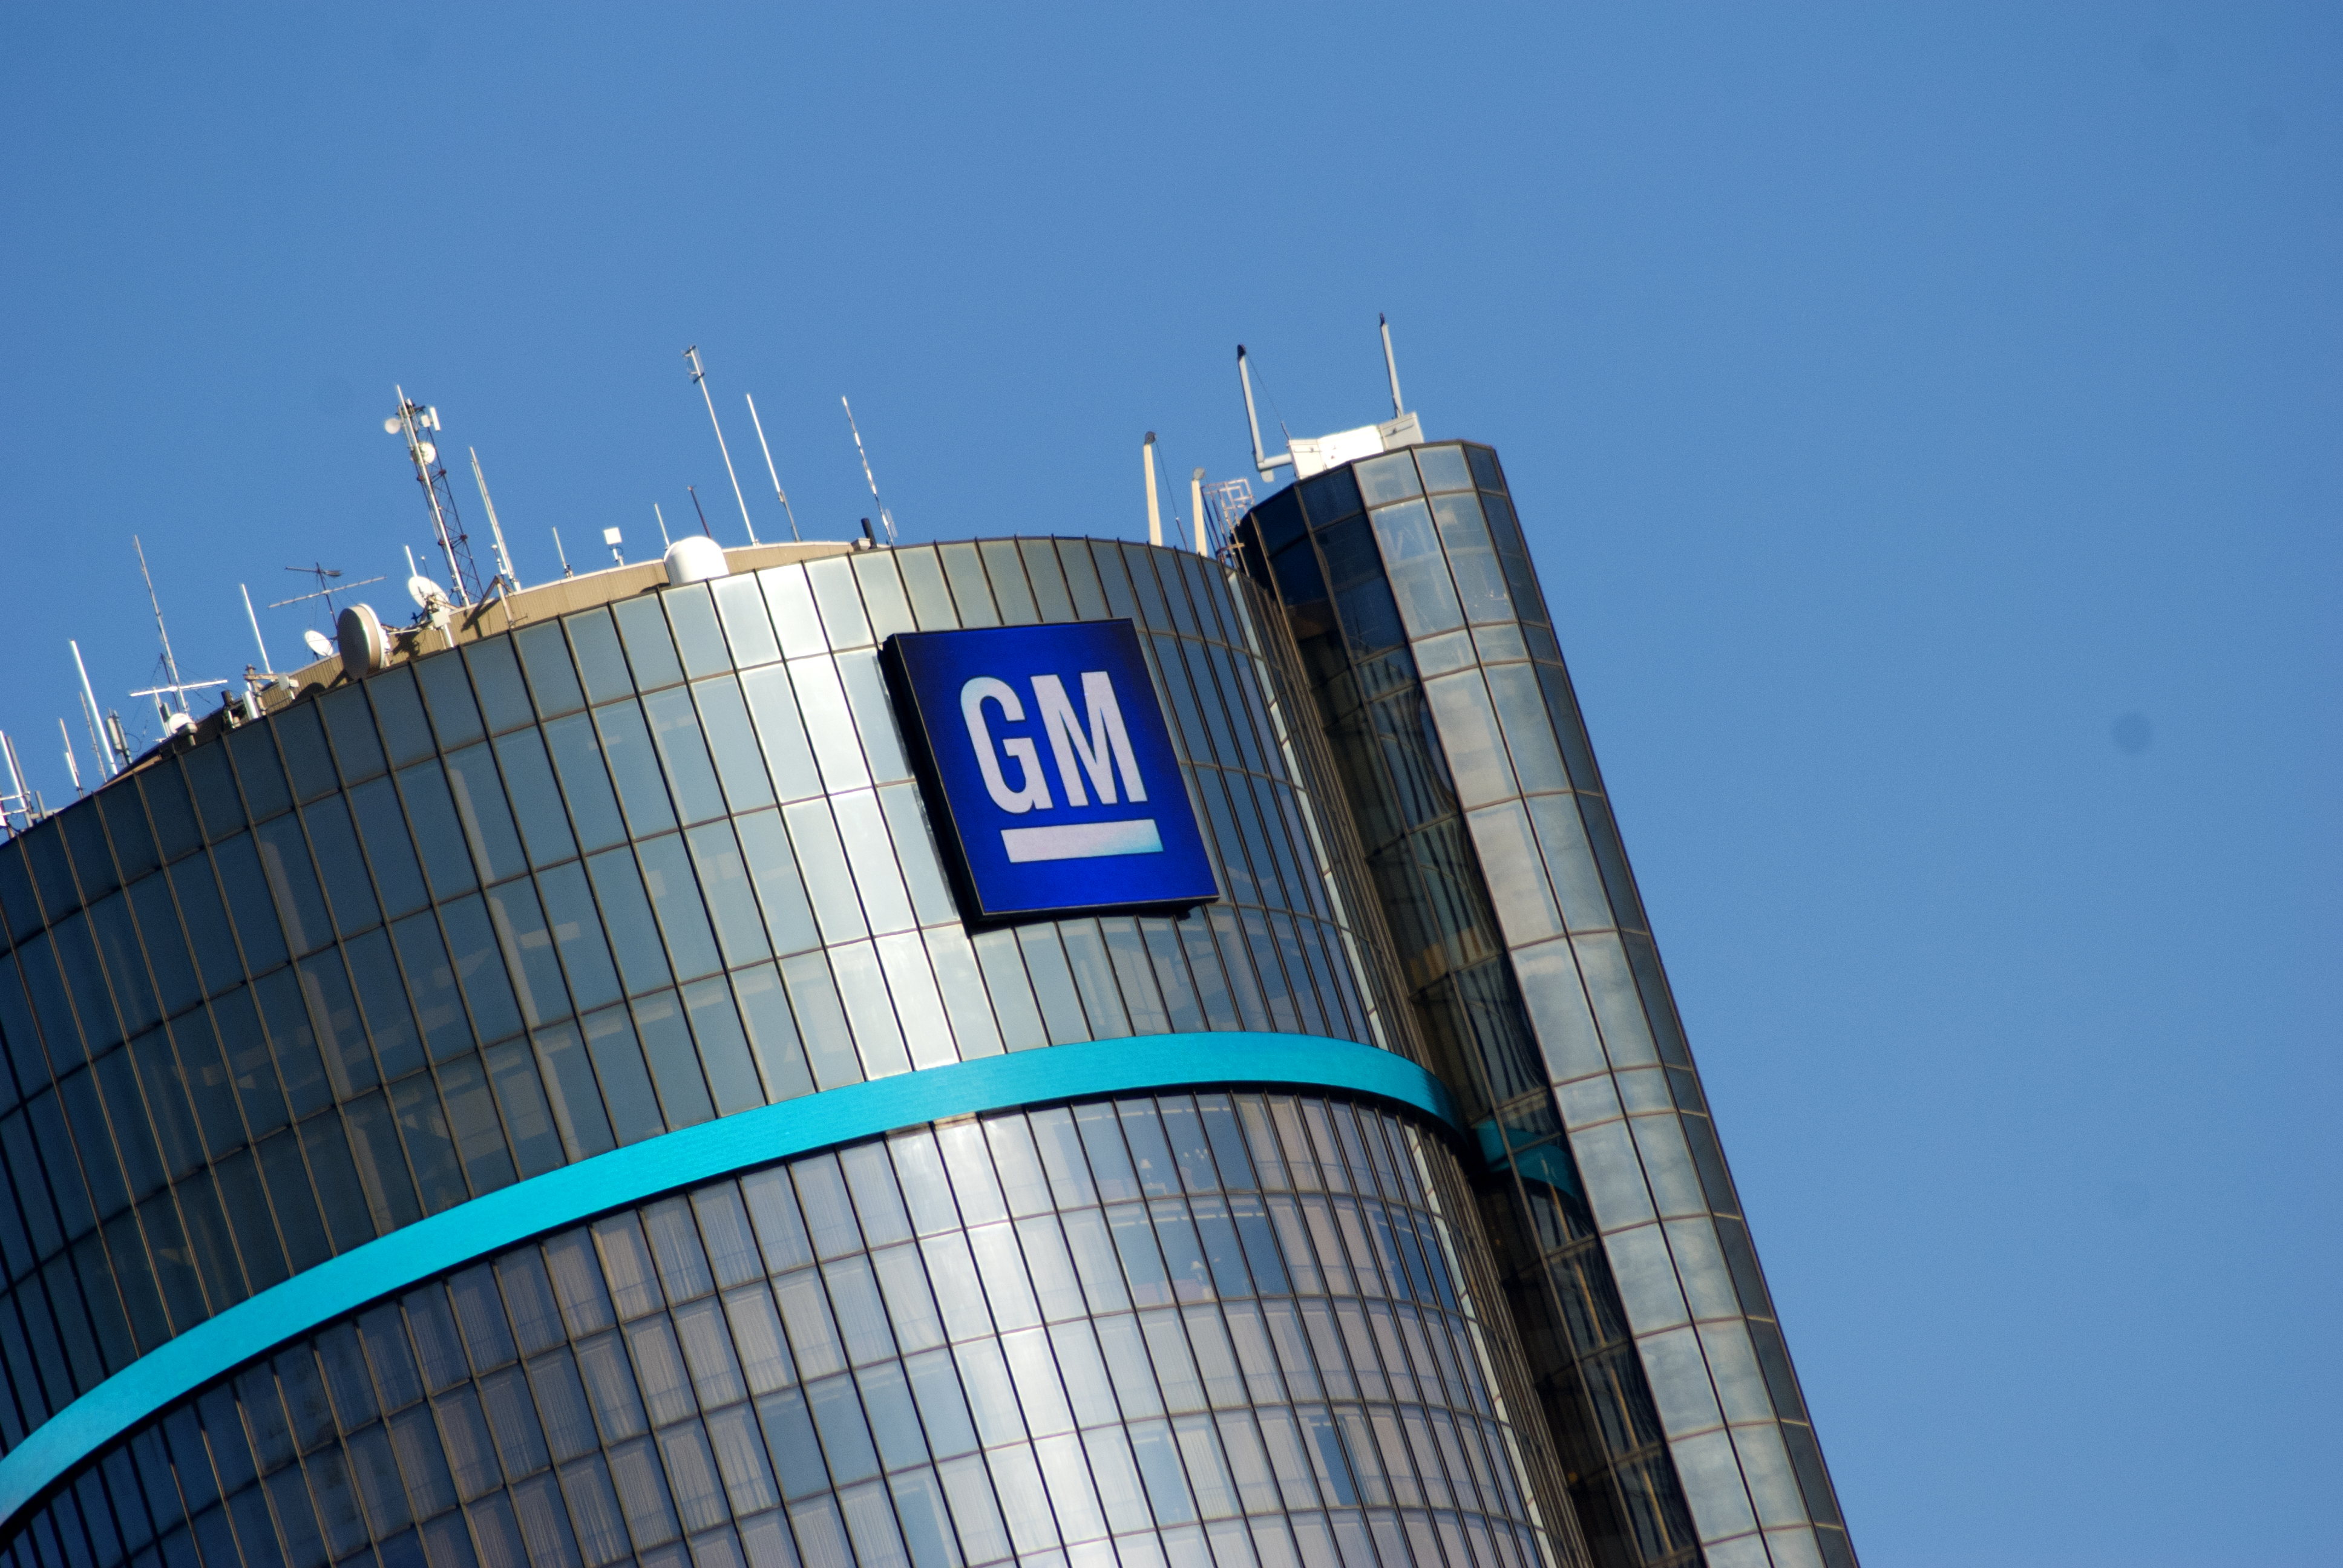 general motors poletown mi and the Incorrect response to captcha captcha has been reloaded if you cannot decipher the captcha, please click the reload or sound button in the captcha box.